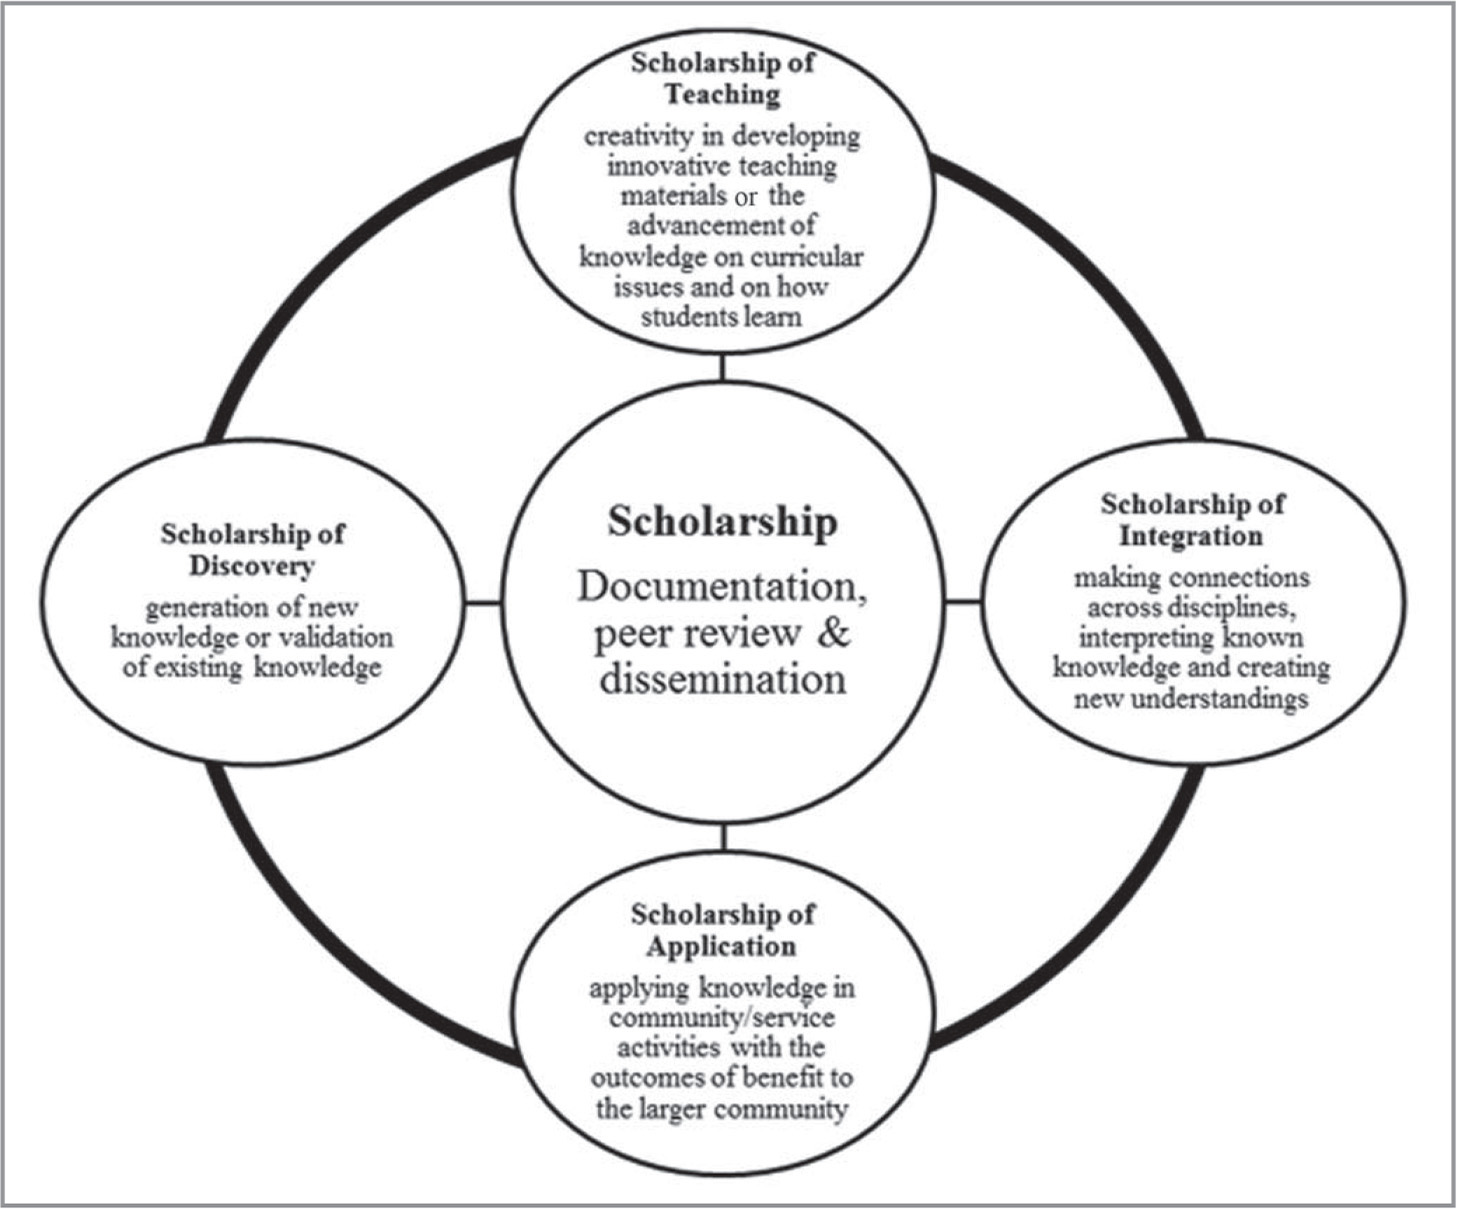 Expanded model of scholarship (based on the framework by Boyer [1990]).